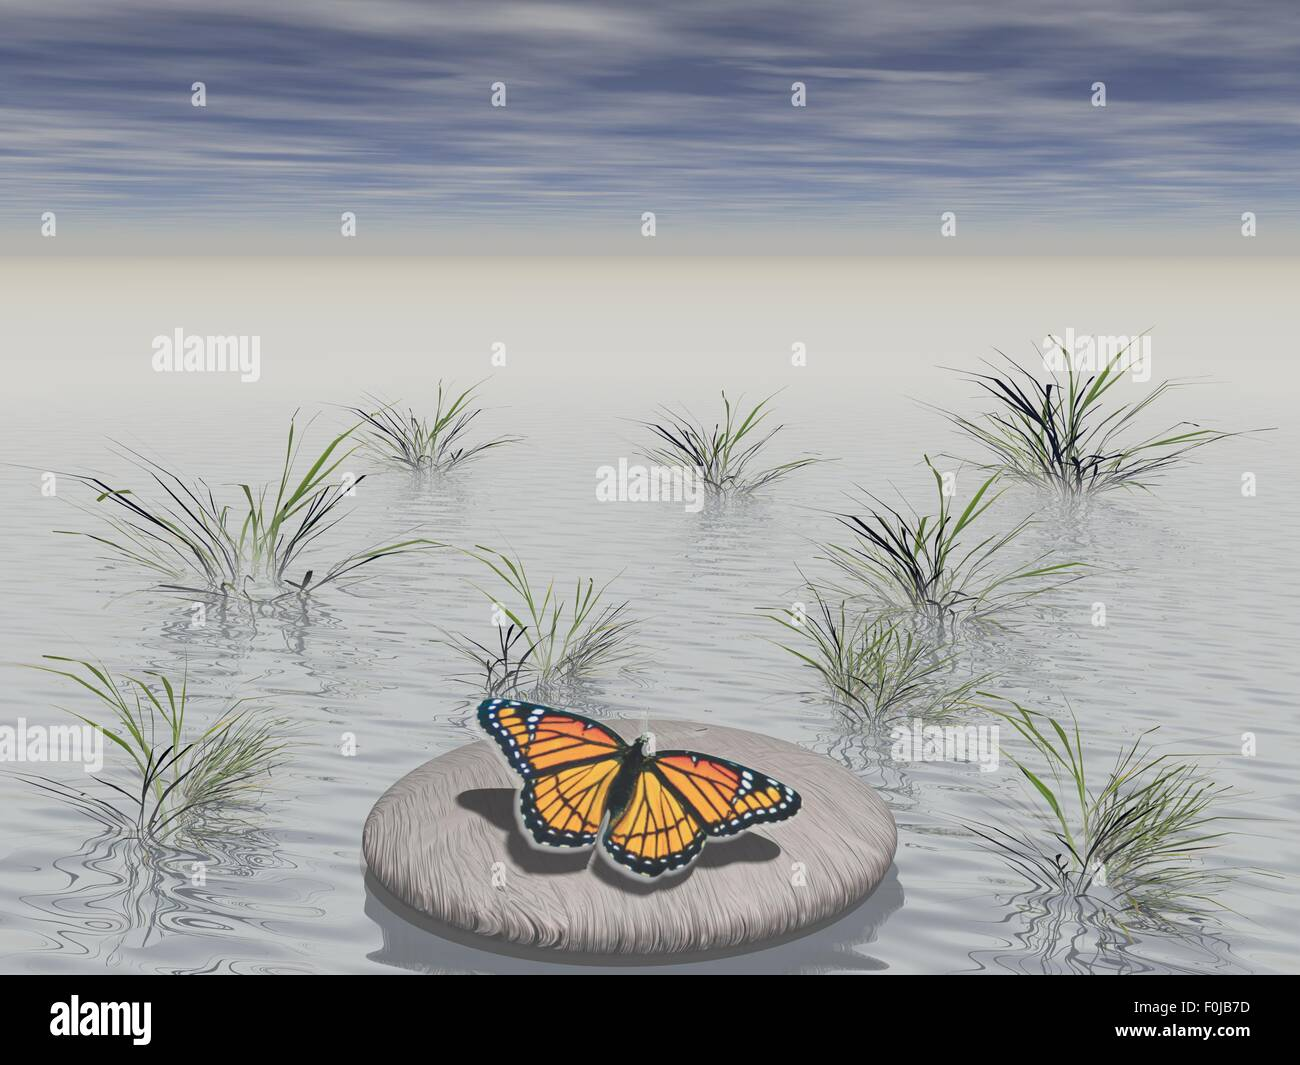 butterfly laid on a stone surrounded with water - Stock Image